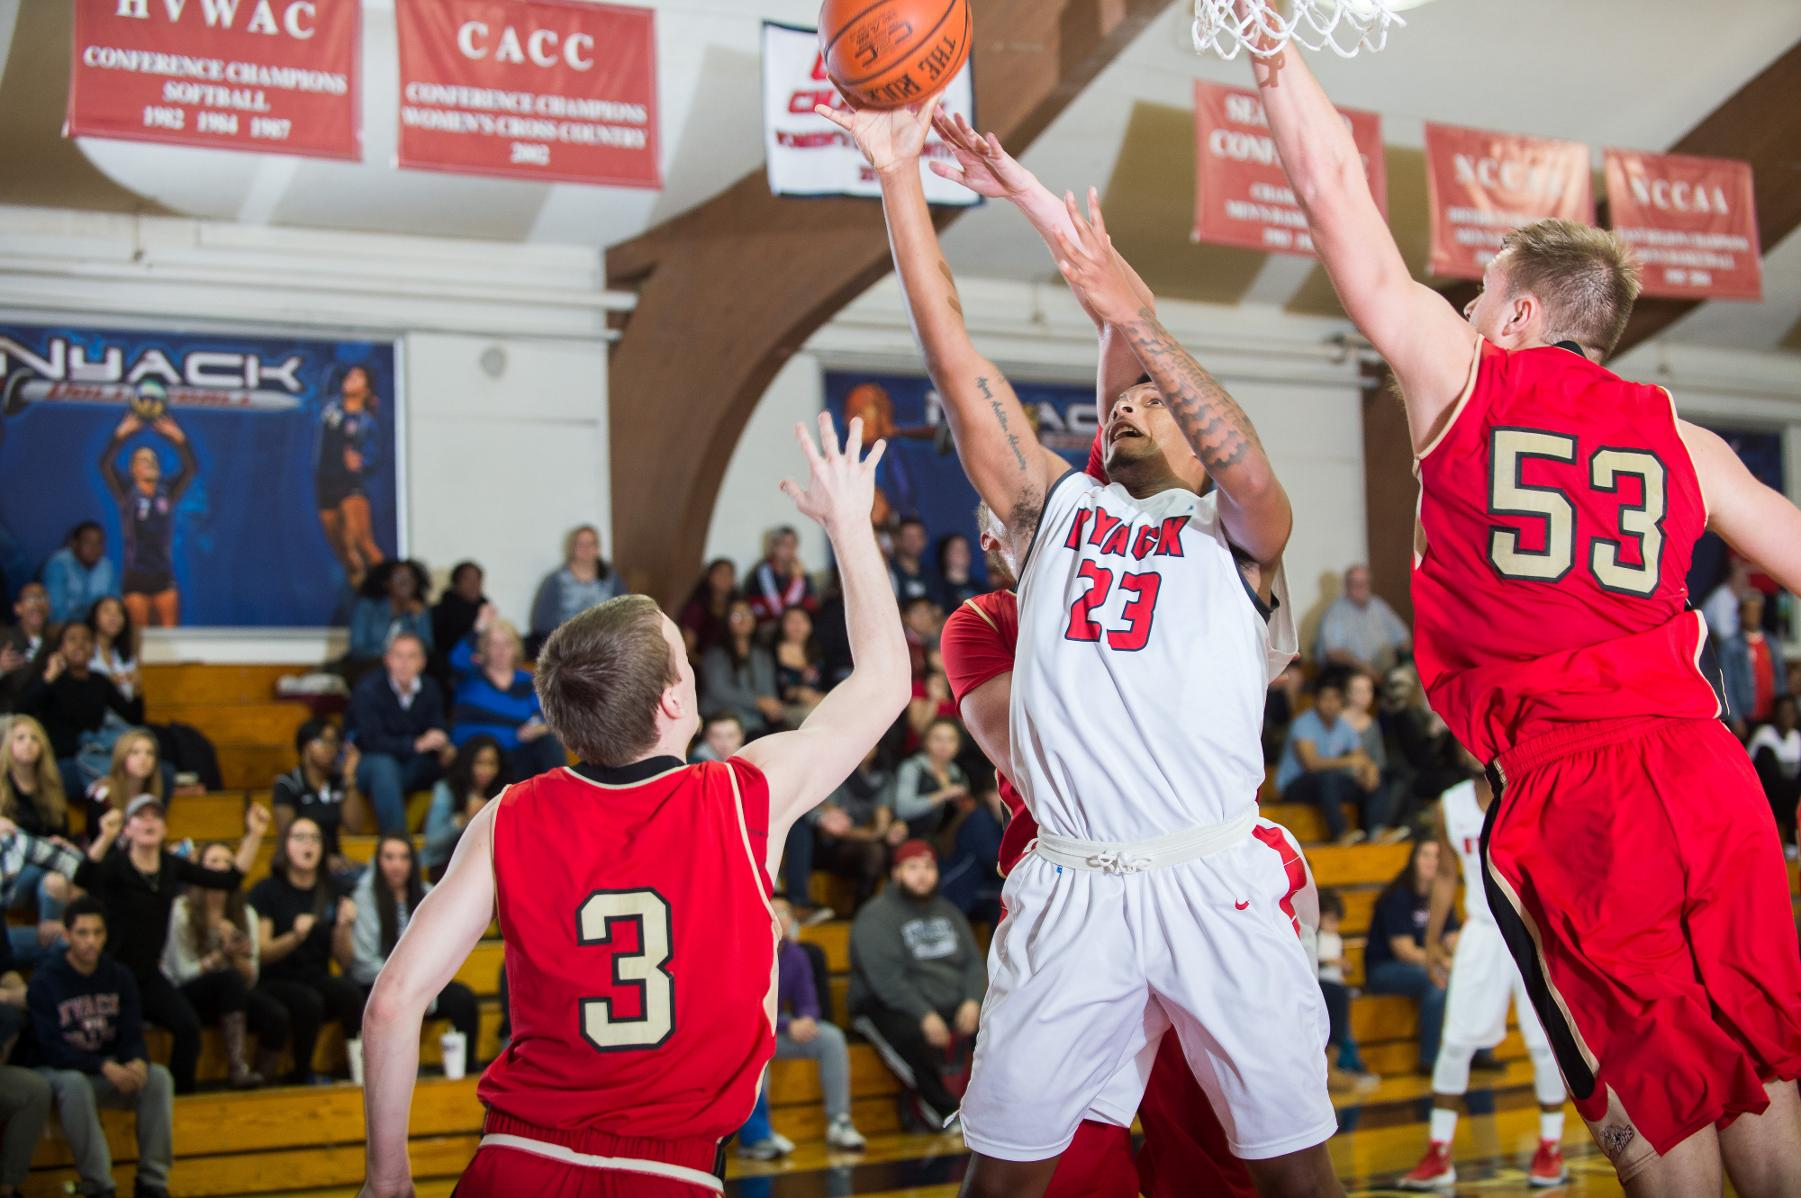 Chandler's Buzzer Beater lifts Men's Hoops Past Assumption